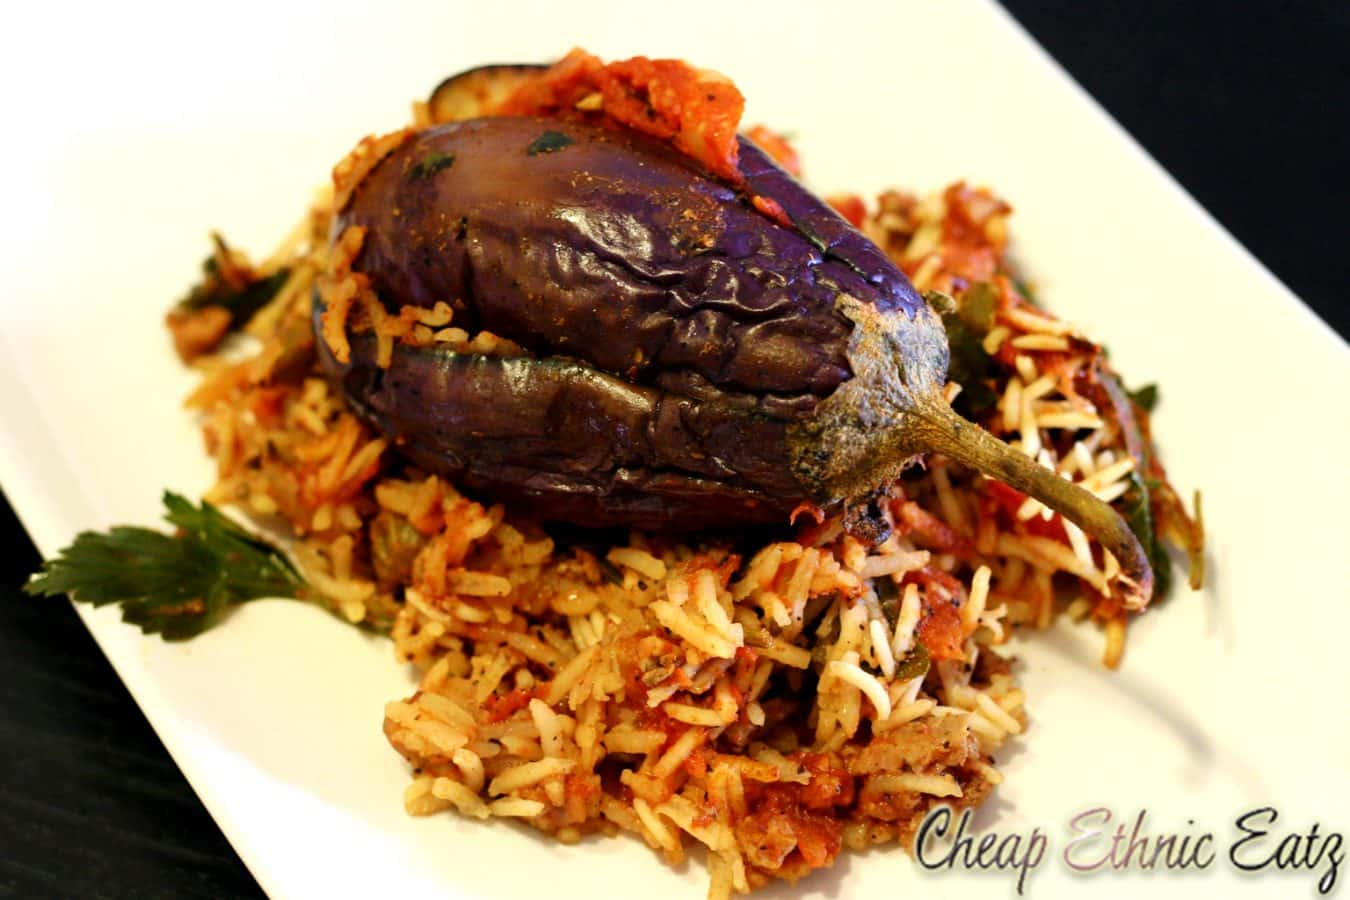 Stuffed Baby Eggplants in a Dirty Rice Pilaf 04